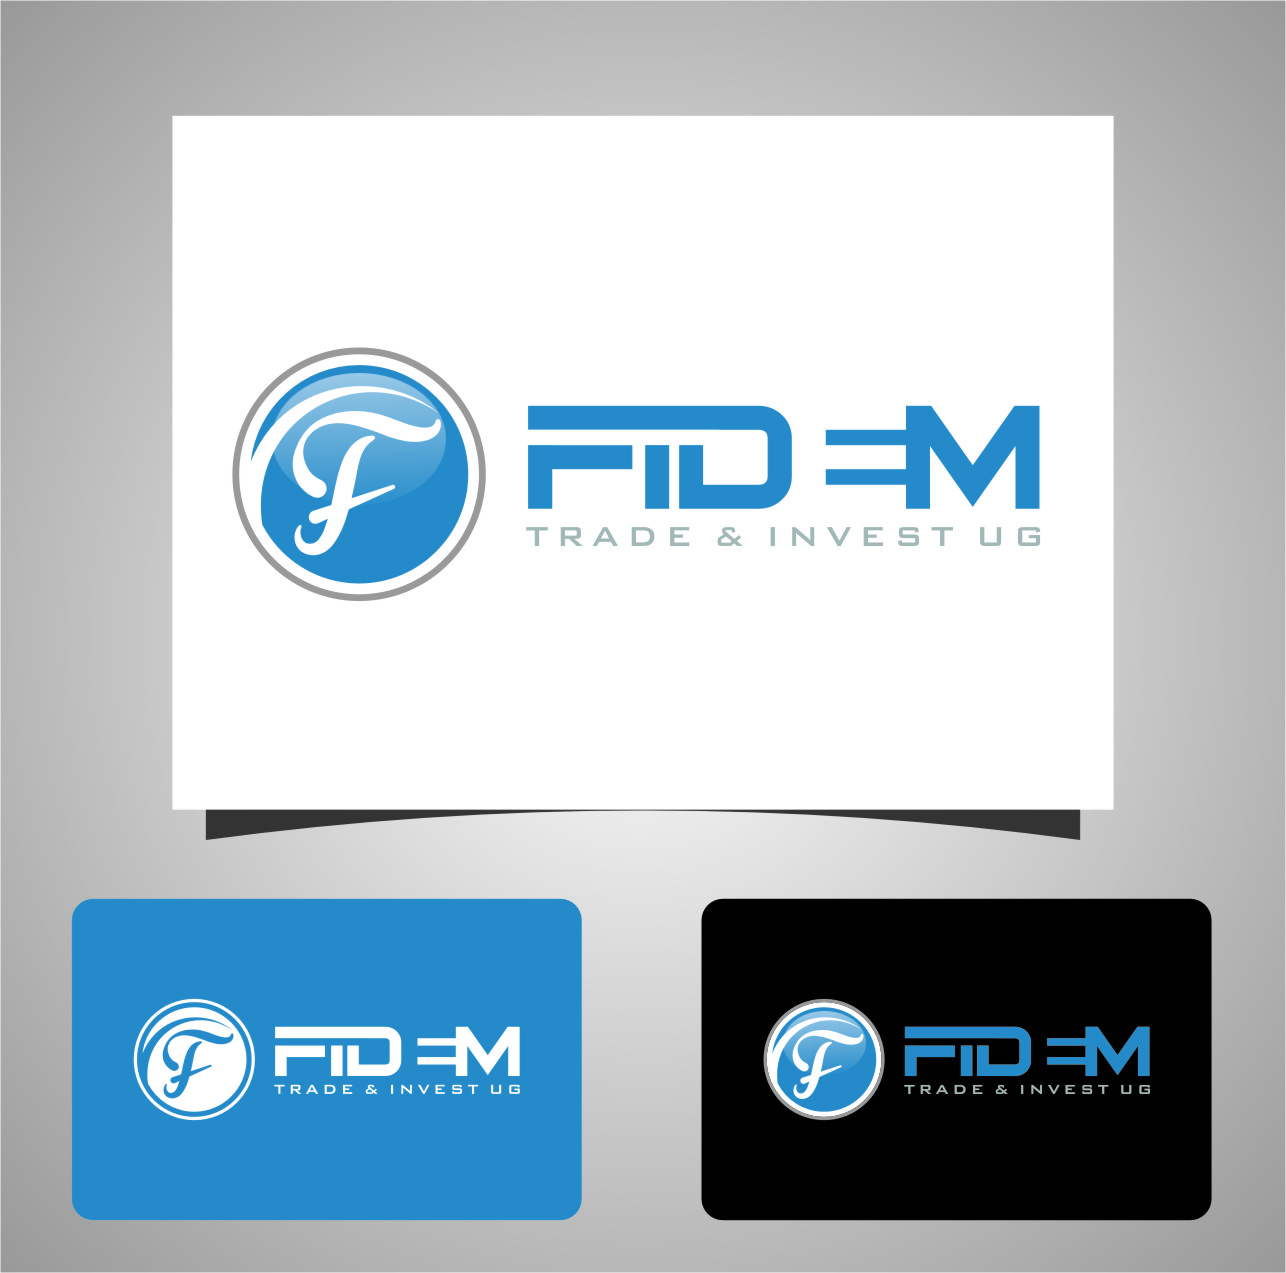 Logo Design by Ngepet_art - Entry No. 662 in the Logo Design Contest Professional Logo Design for FIDEM Trade & Invest UG.